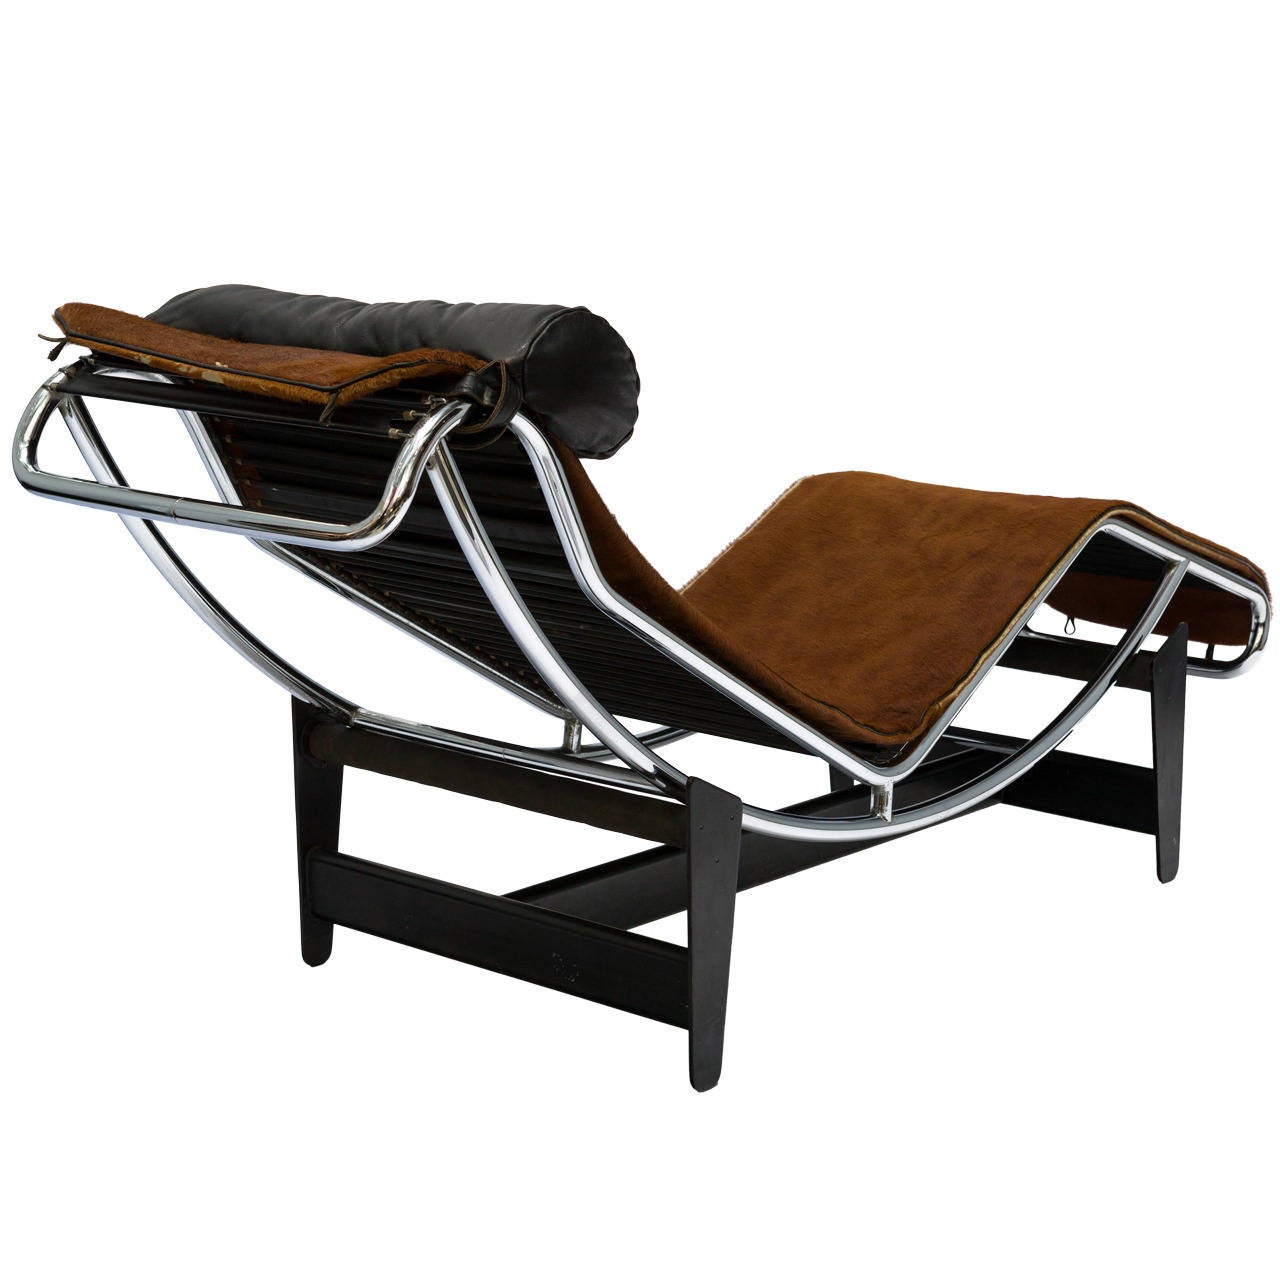 Le corbusier lc4 chaise lounge chair in cowhide for sale for Chaise longue by le corbusier